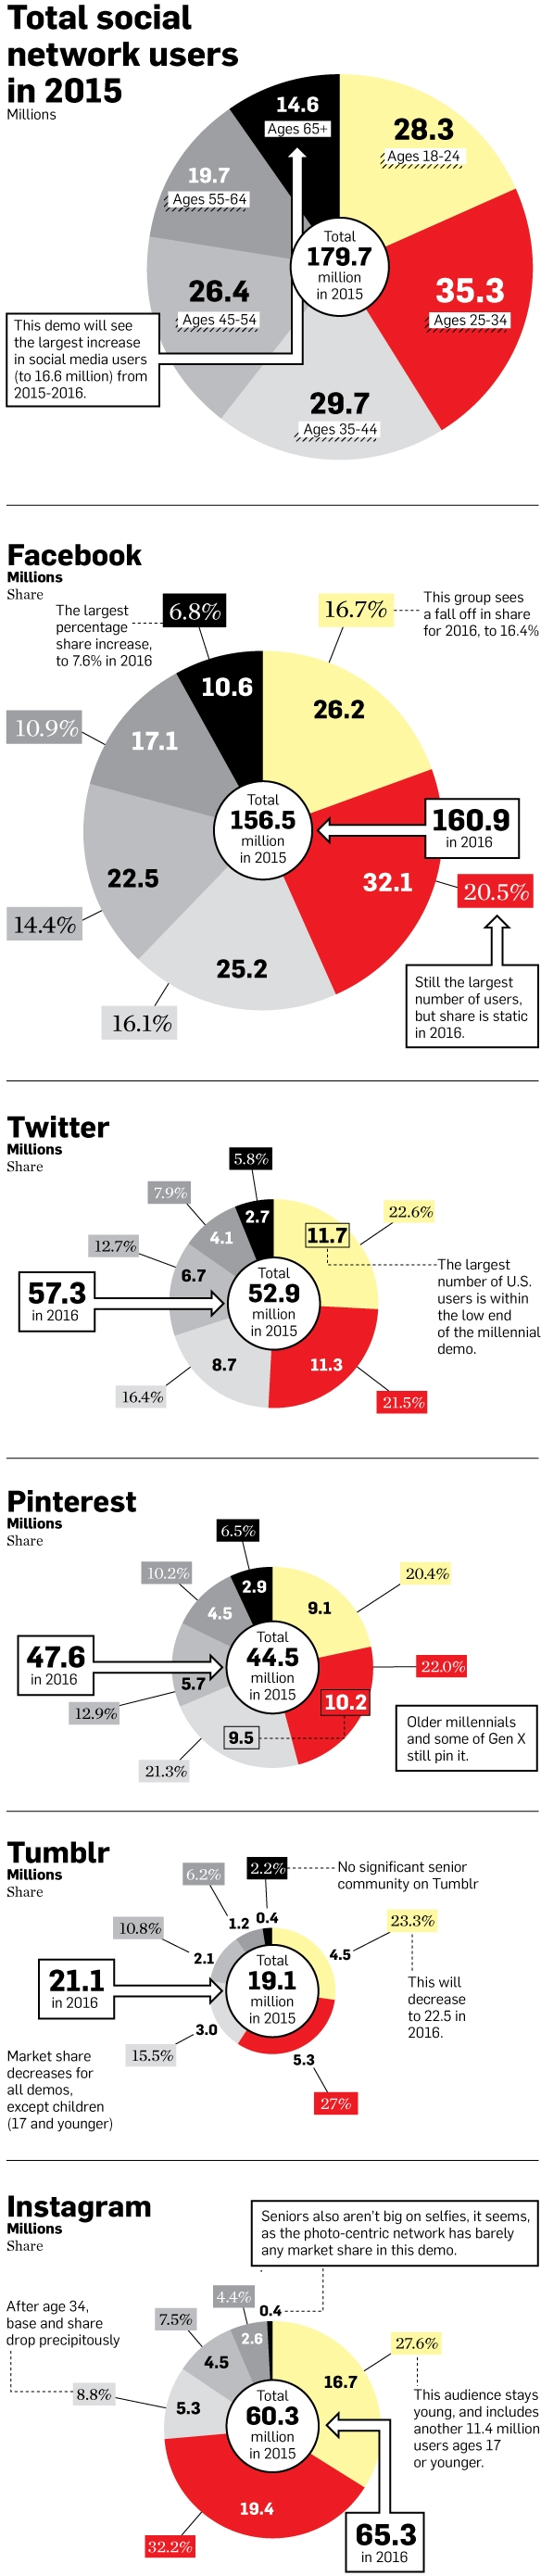 Adweek Social Media Infographic